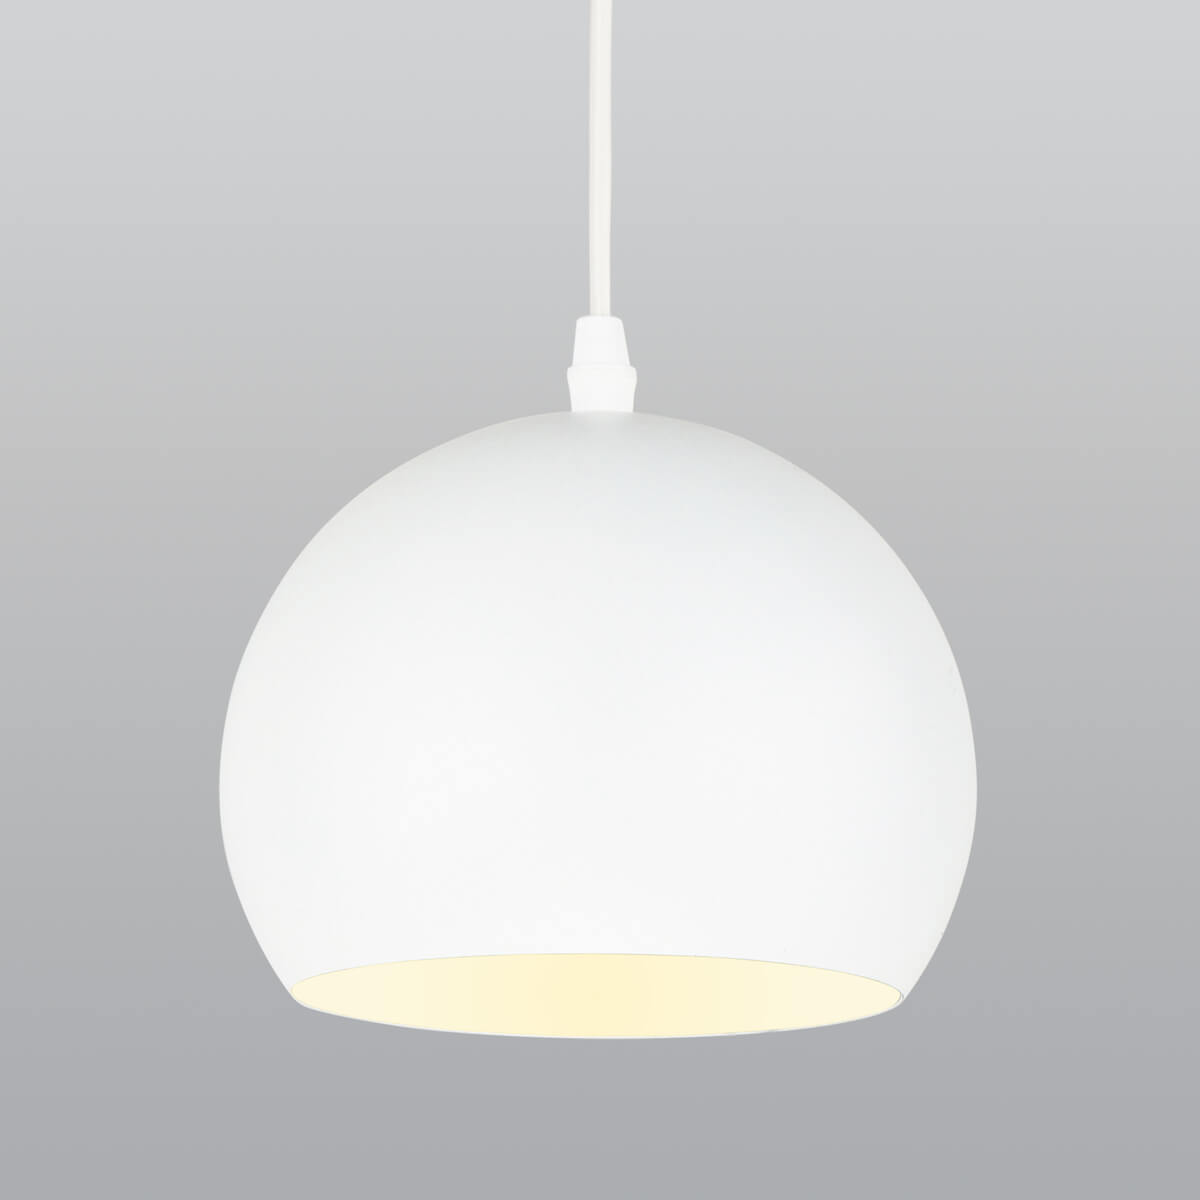 Светильник TK Lighting 4270 Tempre Tempre